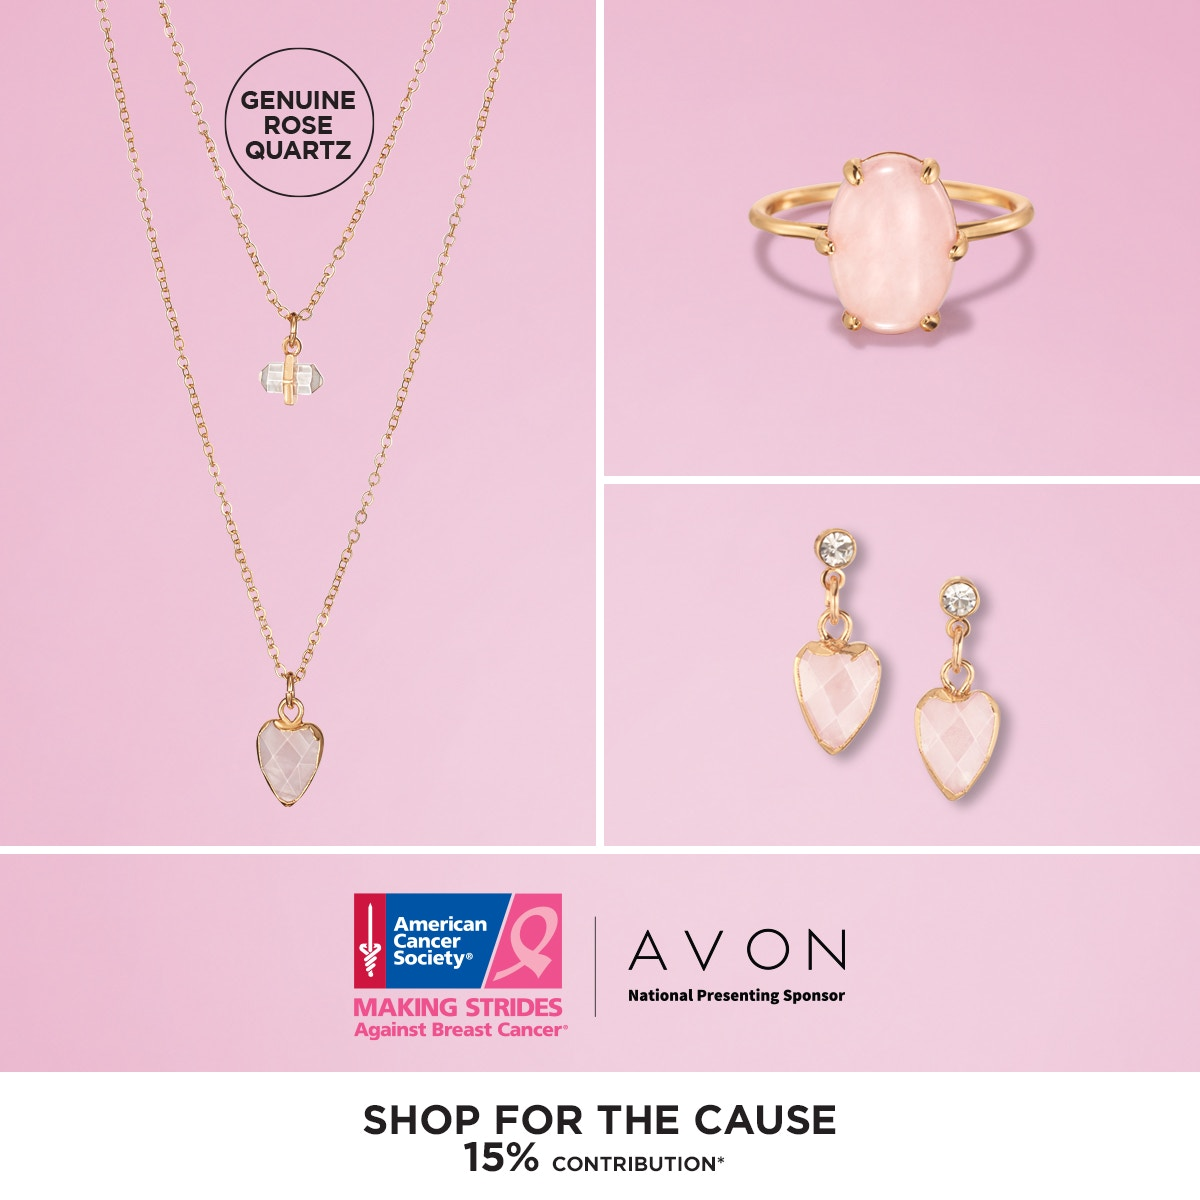 #Gorgeous set of layered #necklaces, featuring genuine #rose-quartz-charms & dainty #goldtone_chains. It's a simple, yet pretty way to amp up any look. #ACS #Making_Strides #Against_Breast_Cancer #pink #hope  not2daybreastcancer